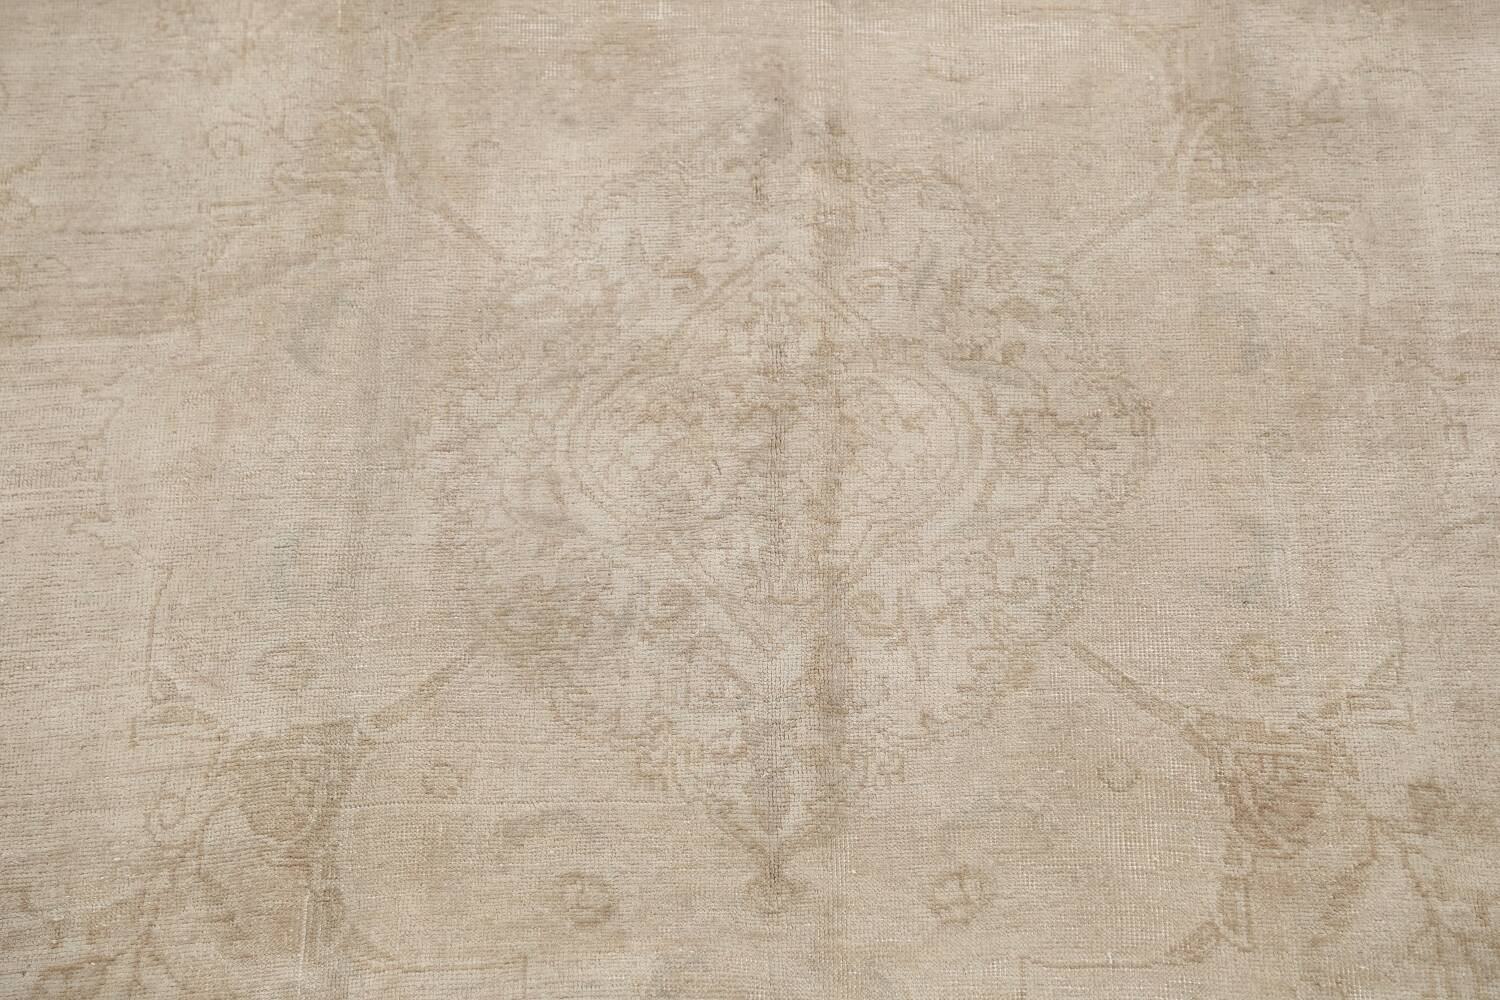 Antique Muted Floral Tabriz Persian Area Rug 7x11 image 4